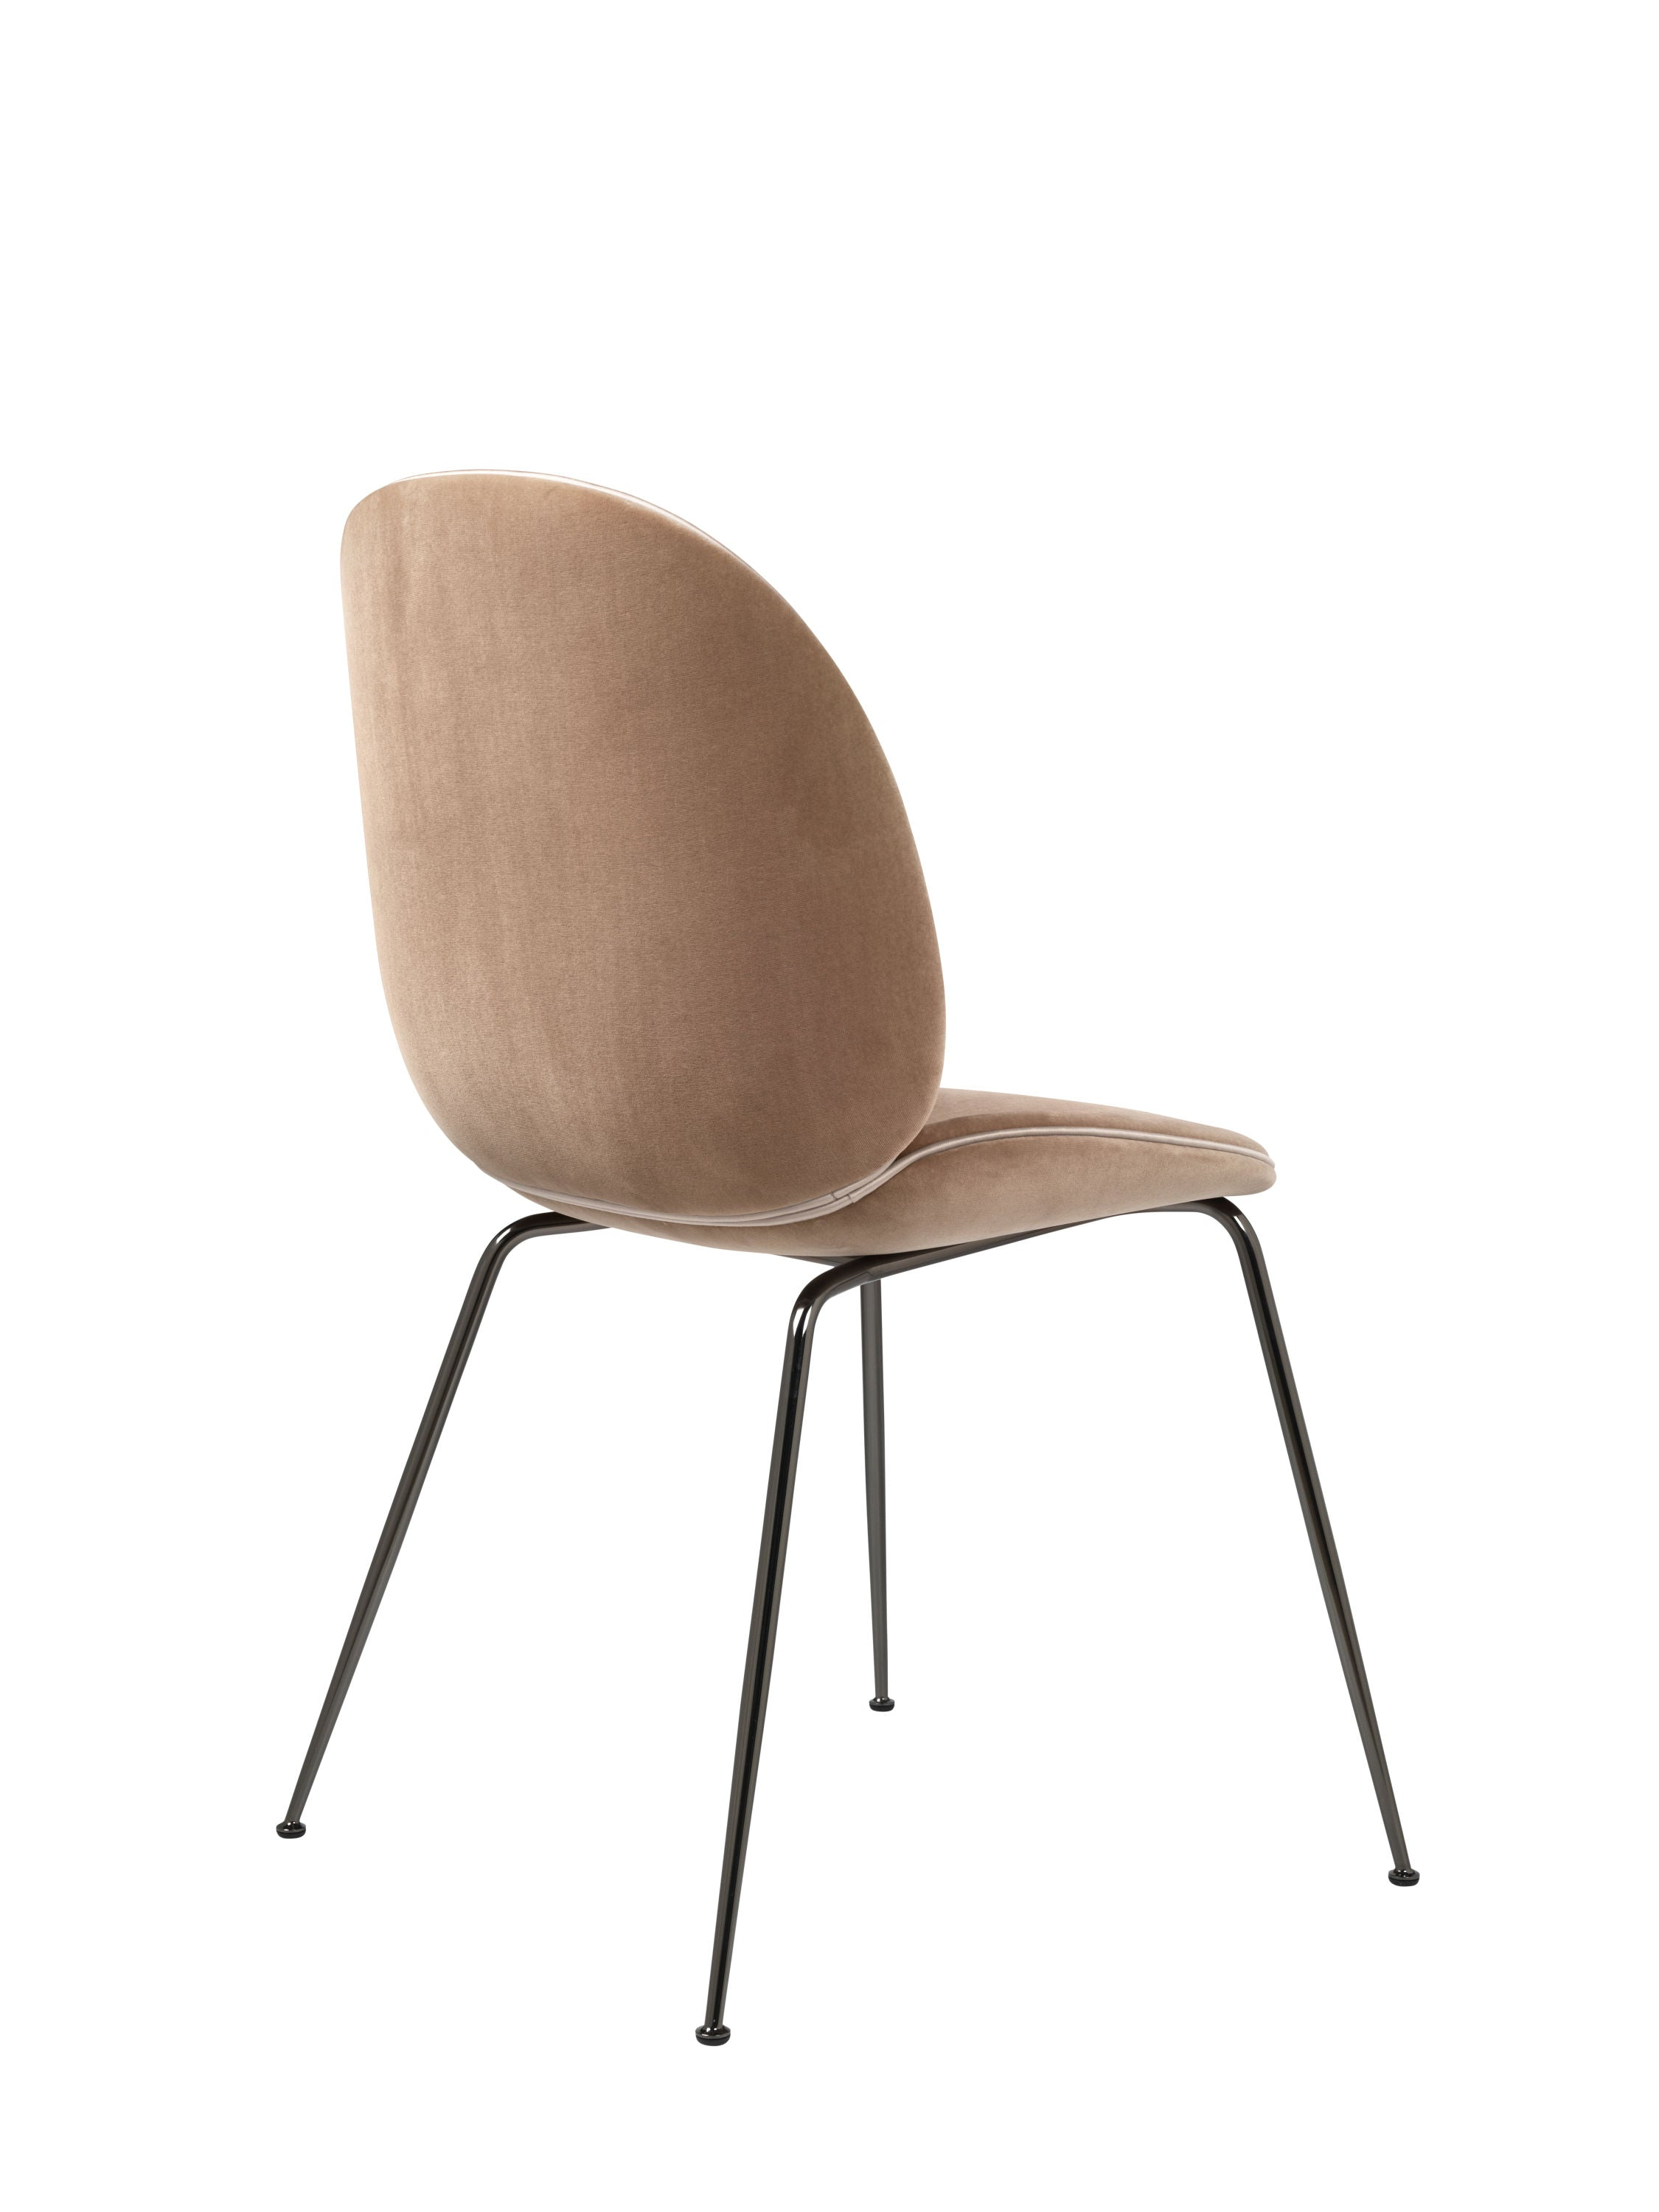 Beetle Dining Chair - Fully Upholstered - Conic Black Chrome base, L'Albero dC Velluto Cotone G075_208 Fawn Beige Piping: L'Albero dC Luce G066/18 fra GUBI